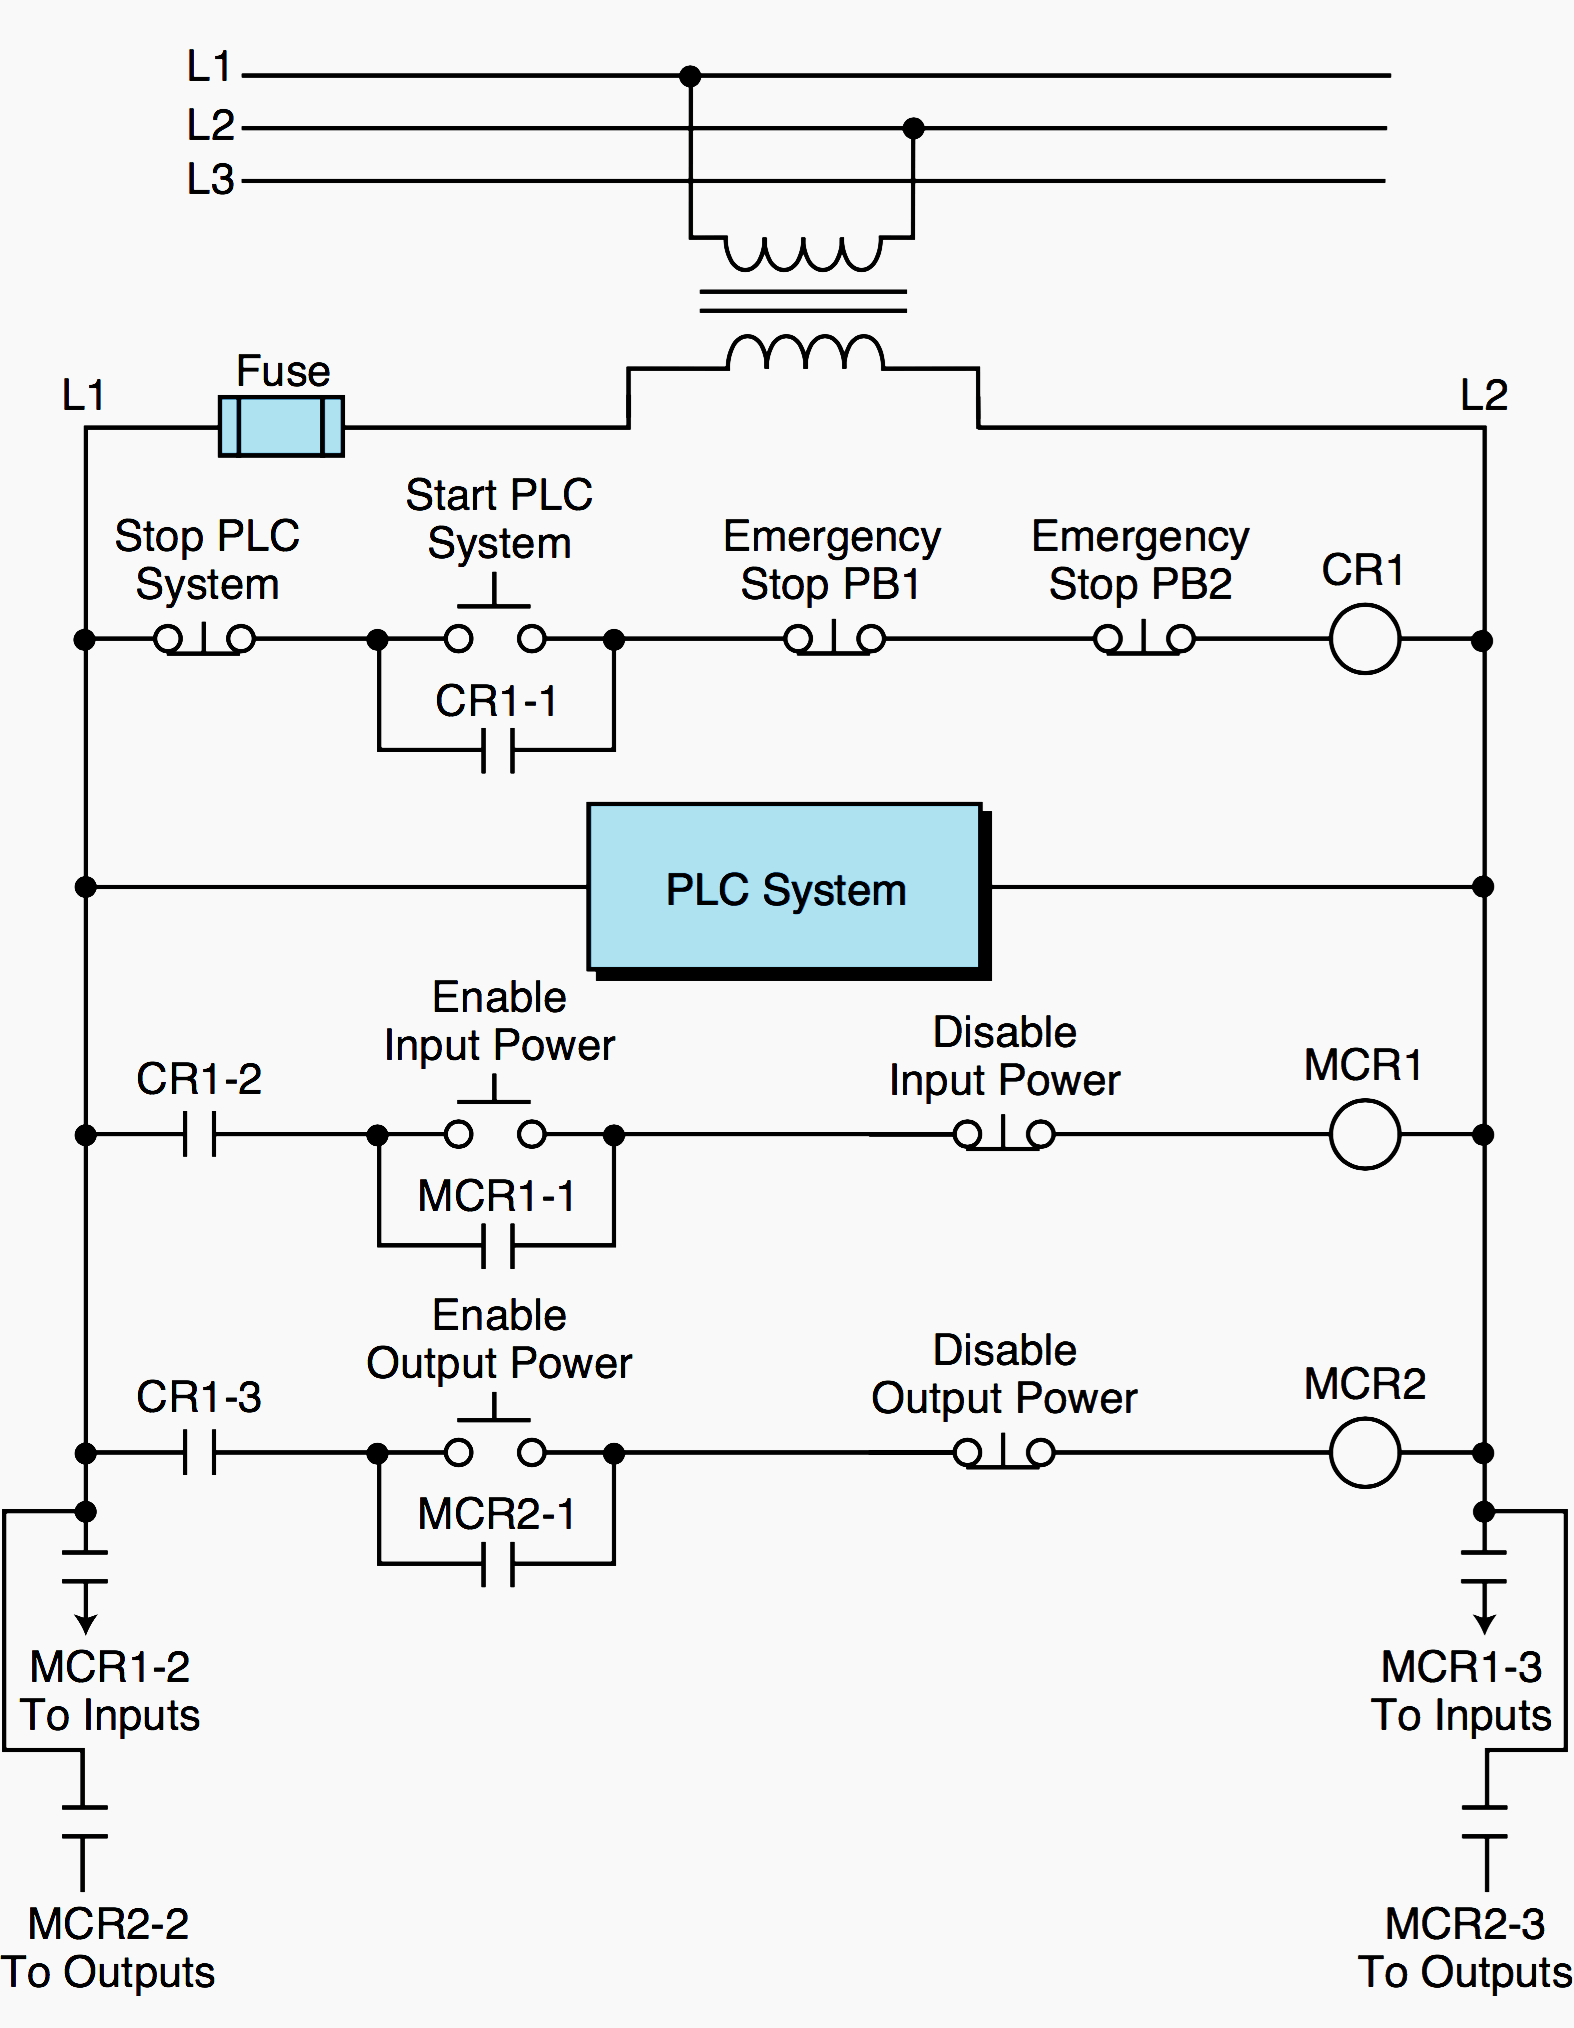 master start control for a plc with mcrs enabling input and output power